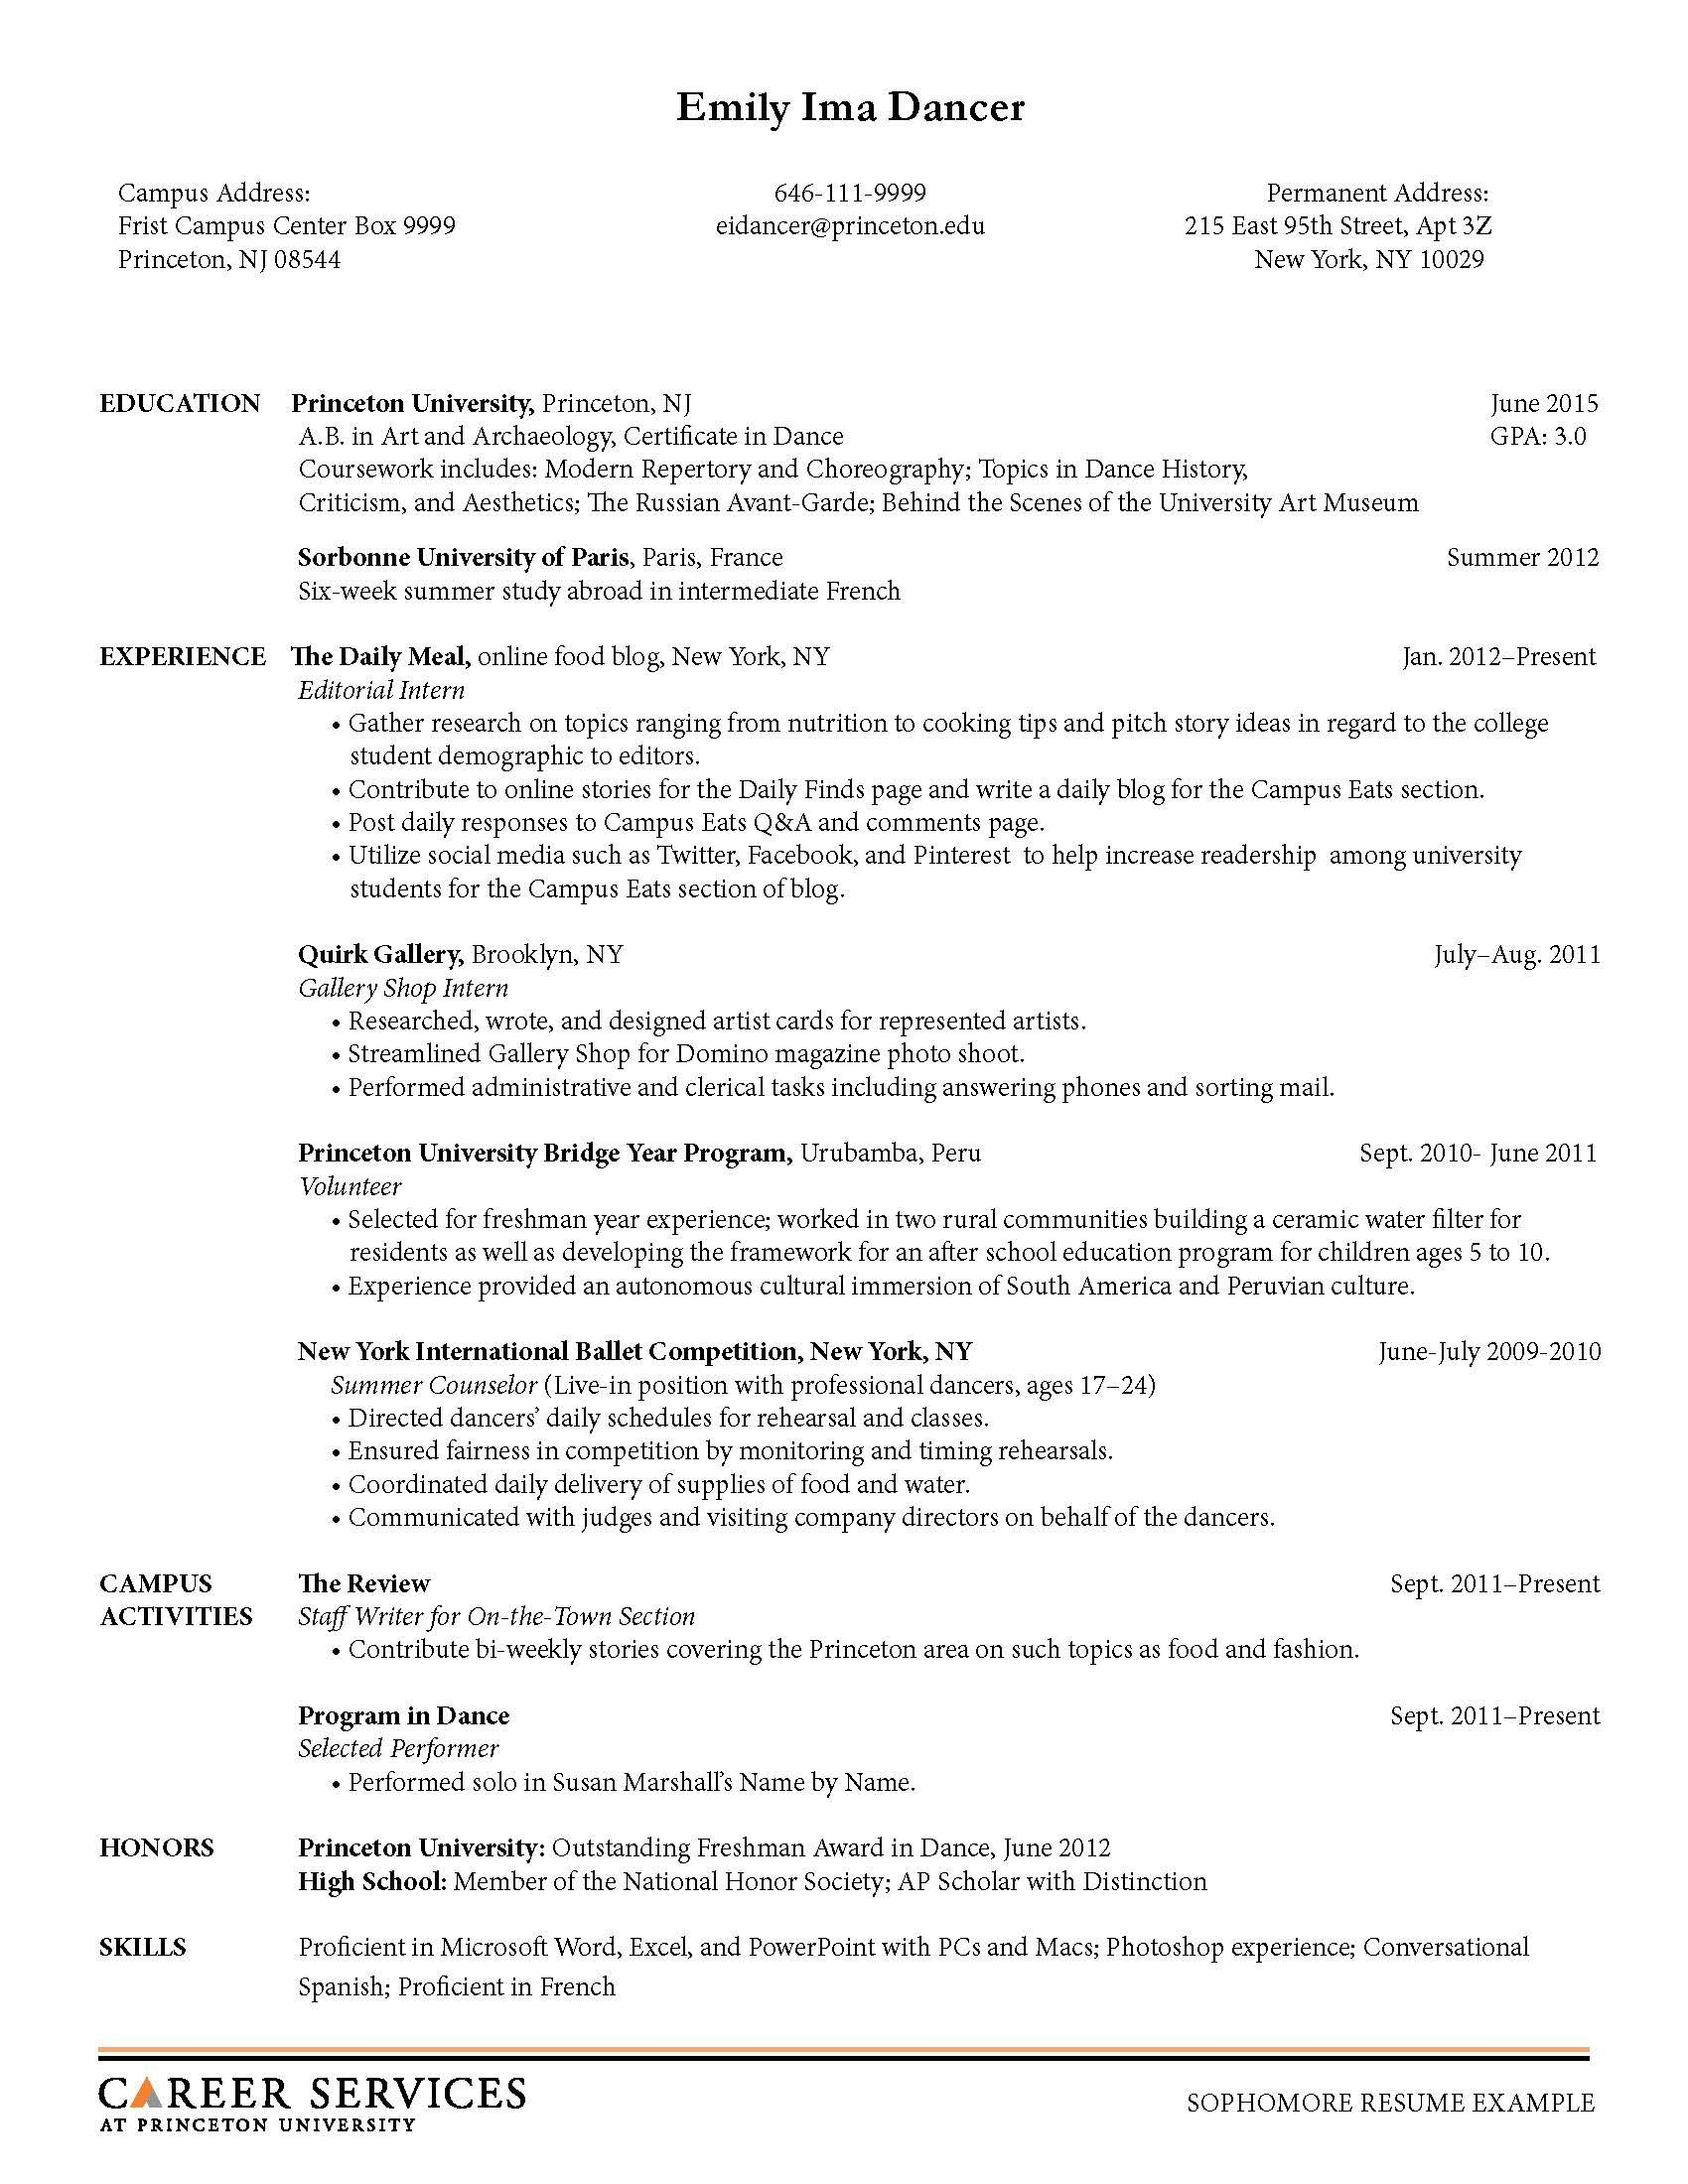 Picnictoimpeachus  Unique Sample Resume Resume And Career On Pinterest With Entrancing Youtube Resume Besides Sample Restaurant Resume Furthermore Resume Format For College Students With Divine Should I Include Gpa On Resume Also Grade My Resume In Addition Put Address On Resume And Google Resume Pdf As Well As Ciso Resume Additionally Obiee Resume From Pinterestcom With Picnictoimpeachus  Entrancing Sample Resume Resume And Career On Pinterest With Divine Youtube Resume Besides Sample Restaurant Resume Furthermore Resume Format For College Students And Unique Should I Include Gpa On Resume Also Grade My Resume In Addition Put Address On Resume From Pinterestcom